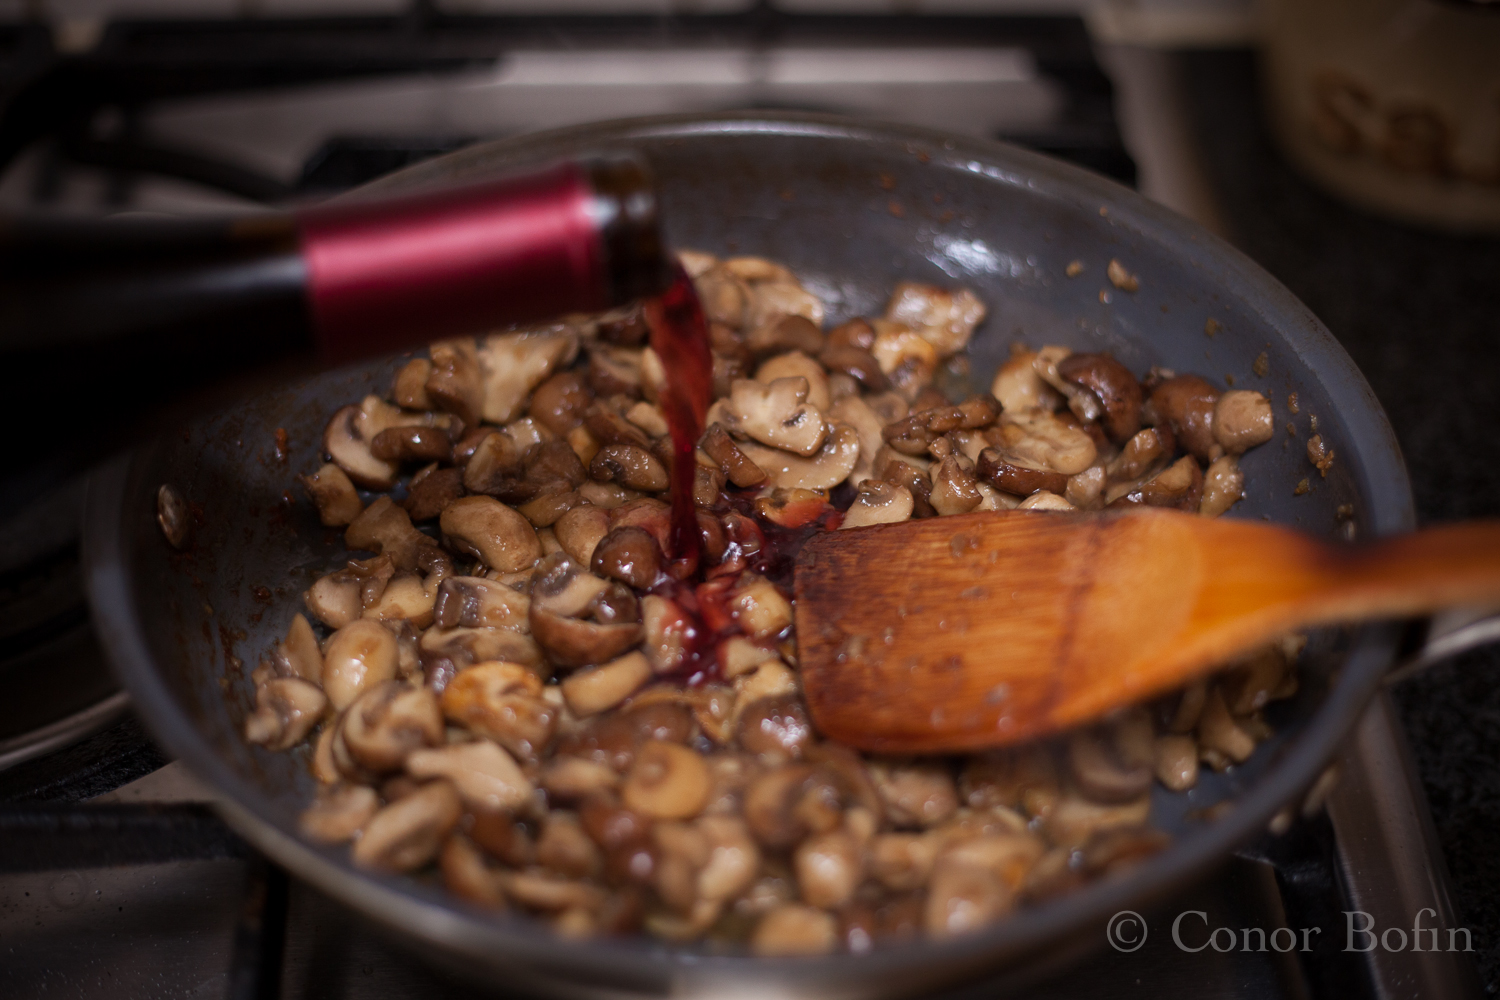 Yes I used the wine in the mushrooms. It helps marry the flavours.